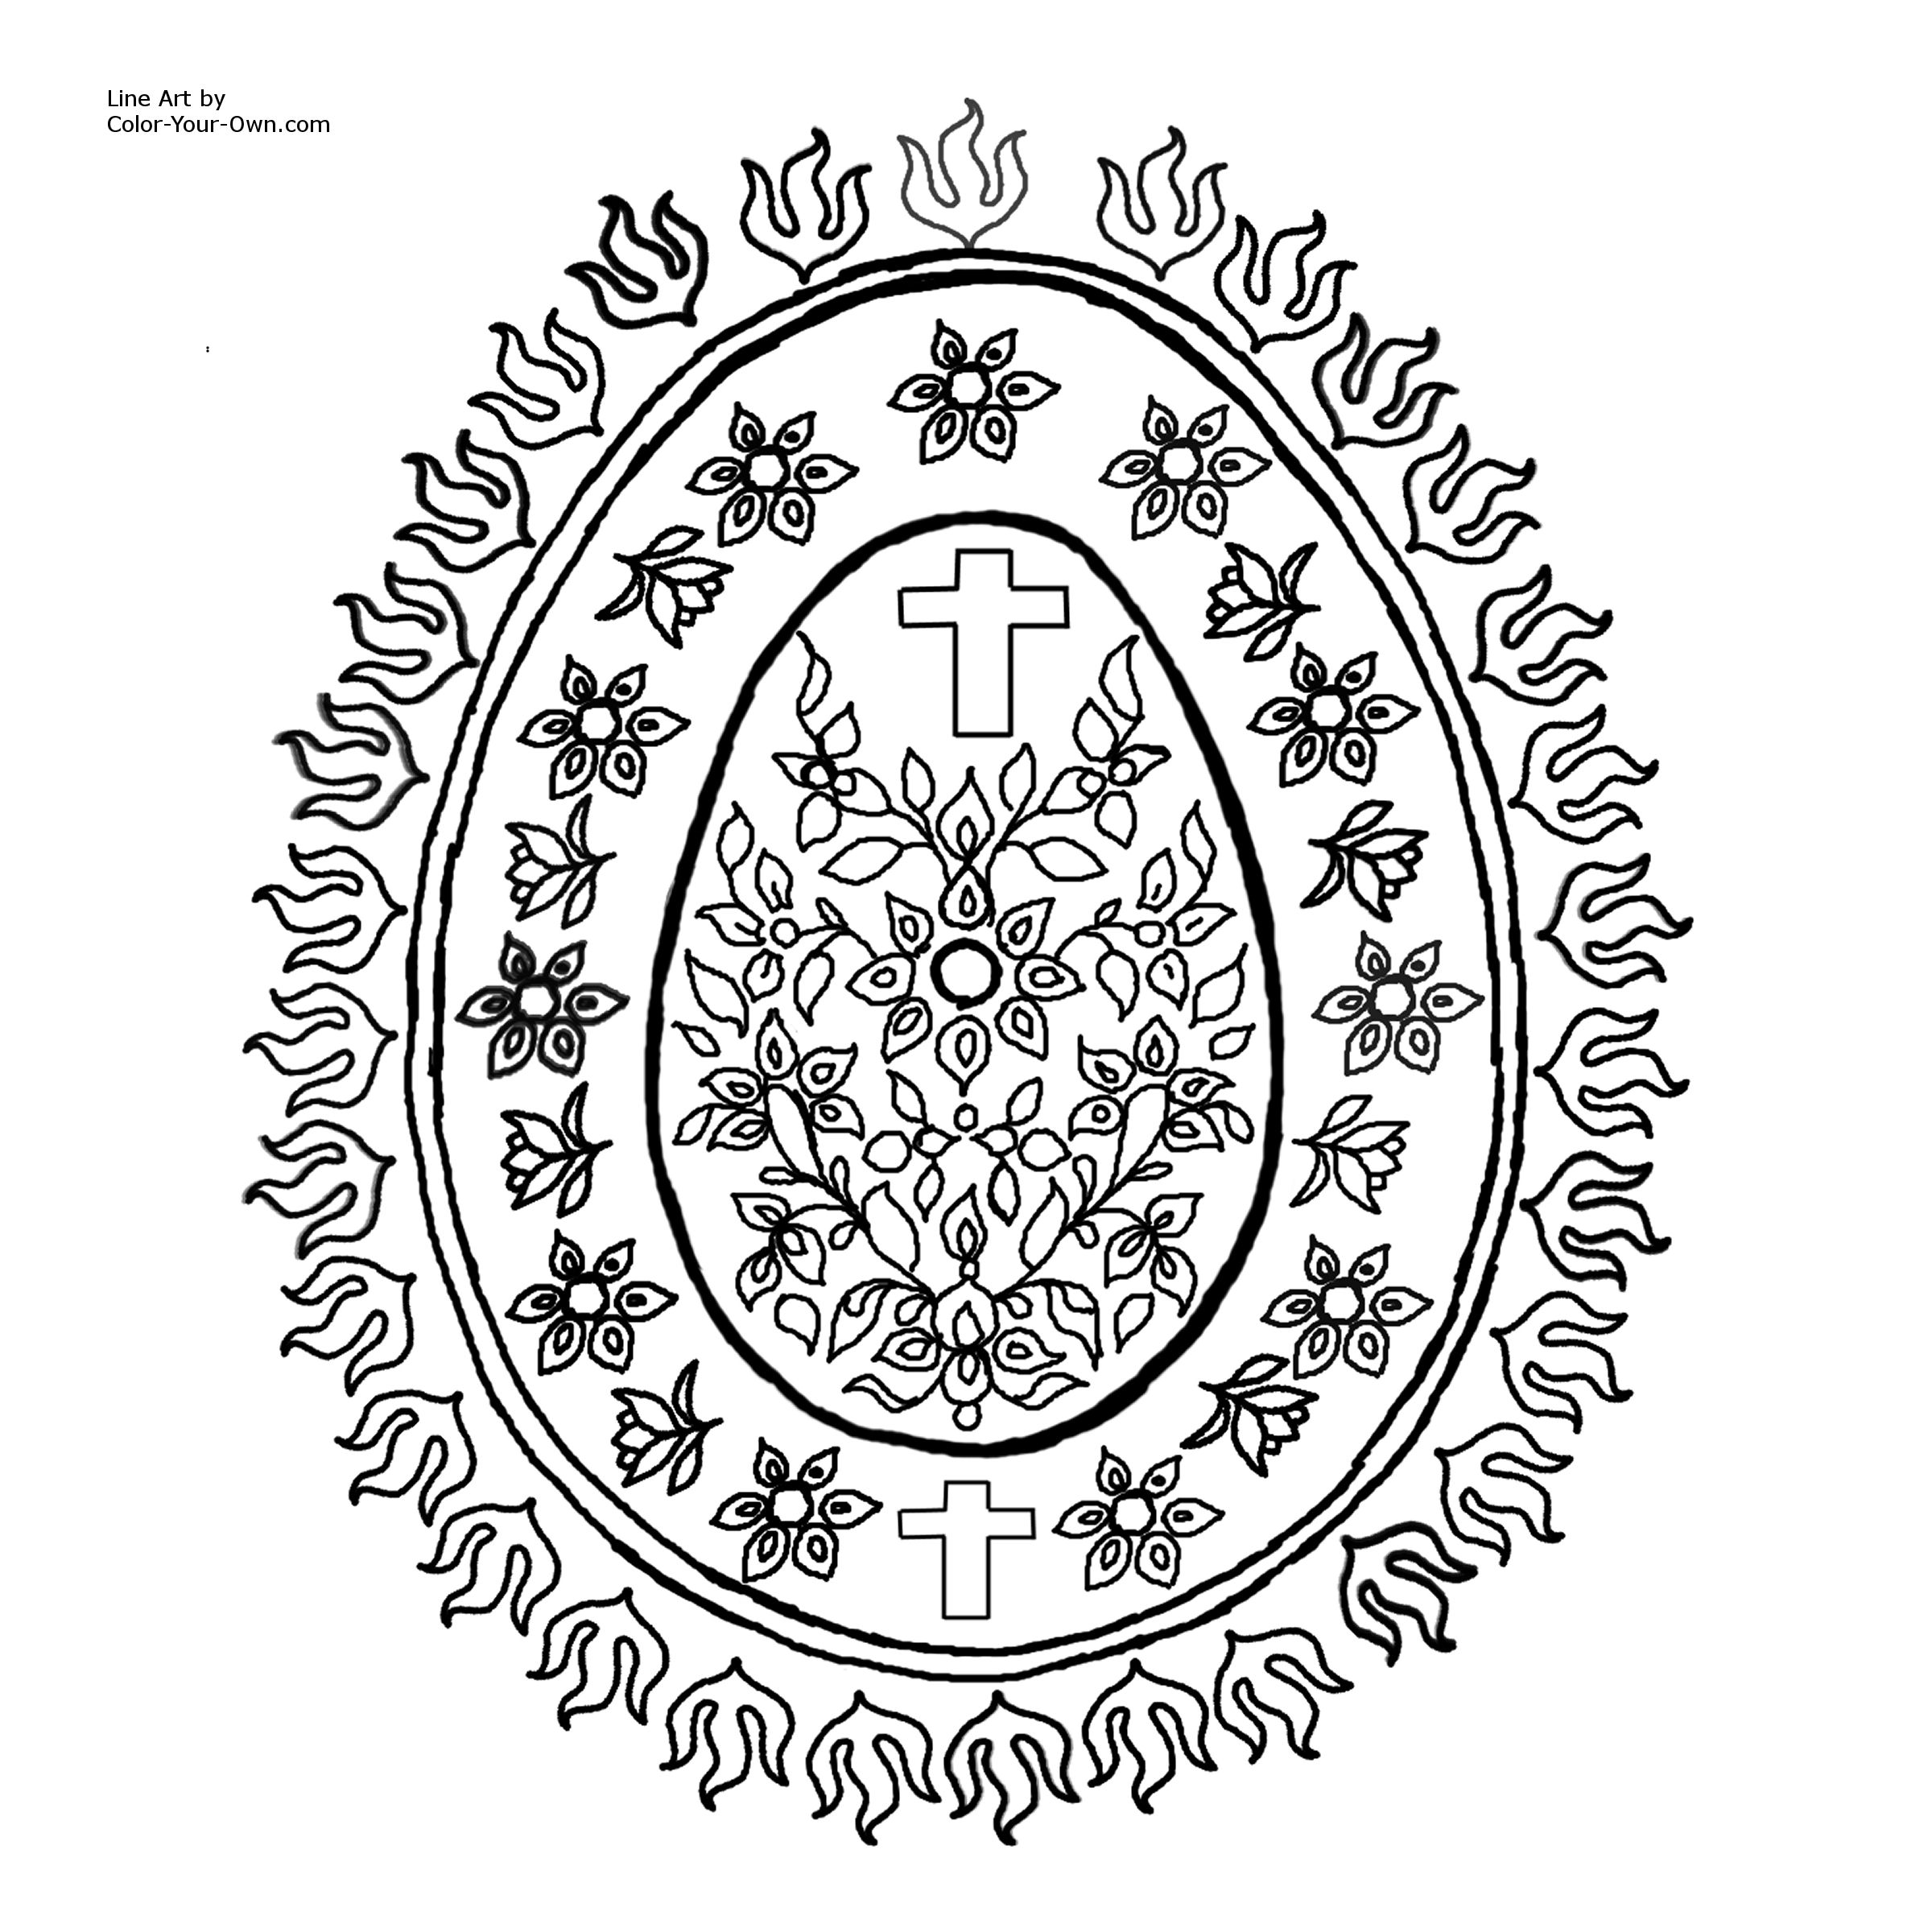 2400x2400 Decorative Egg Pattern With Cross Coloring Page For Easter